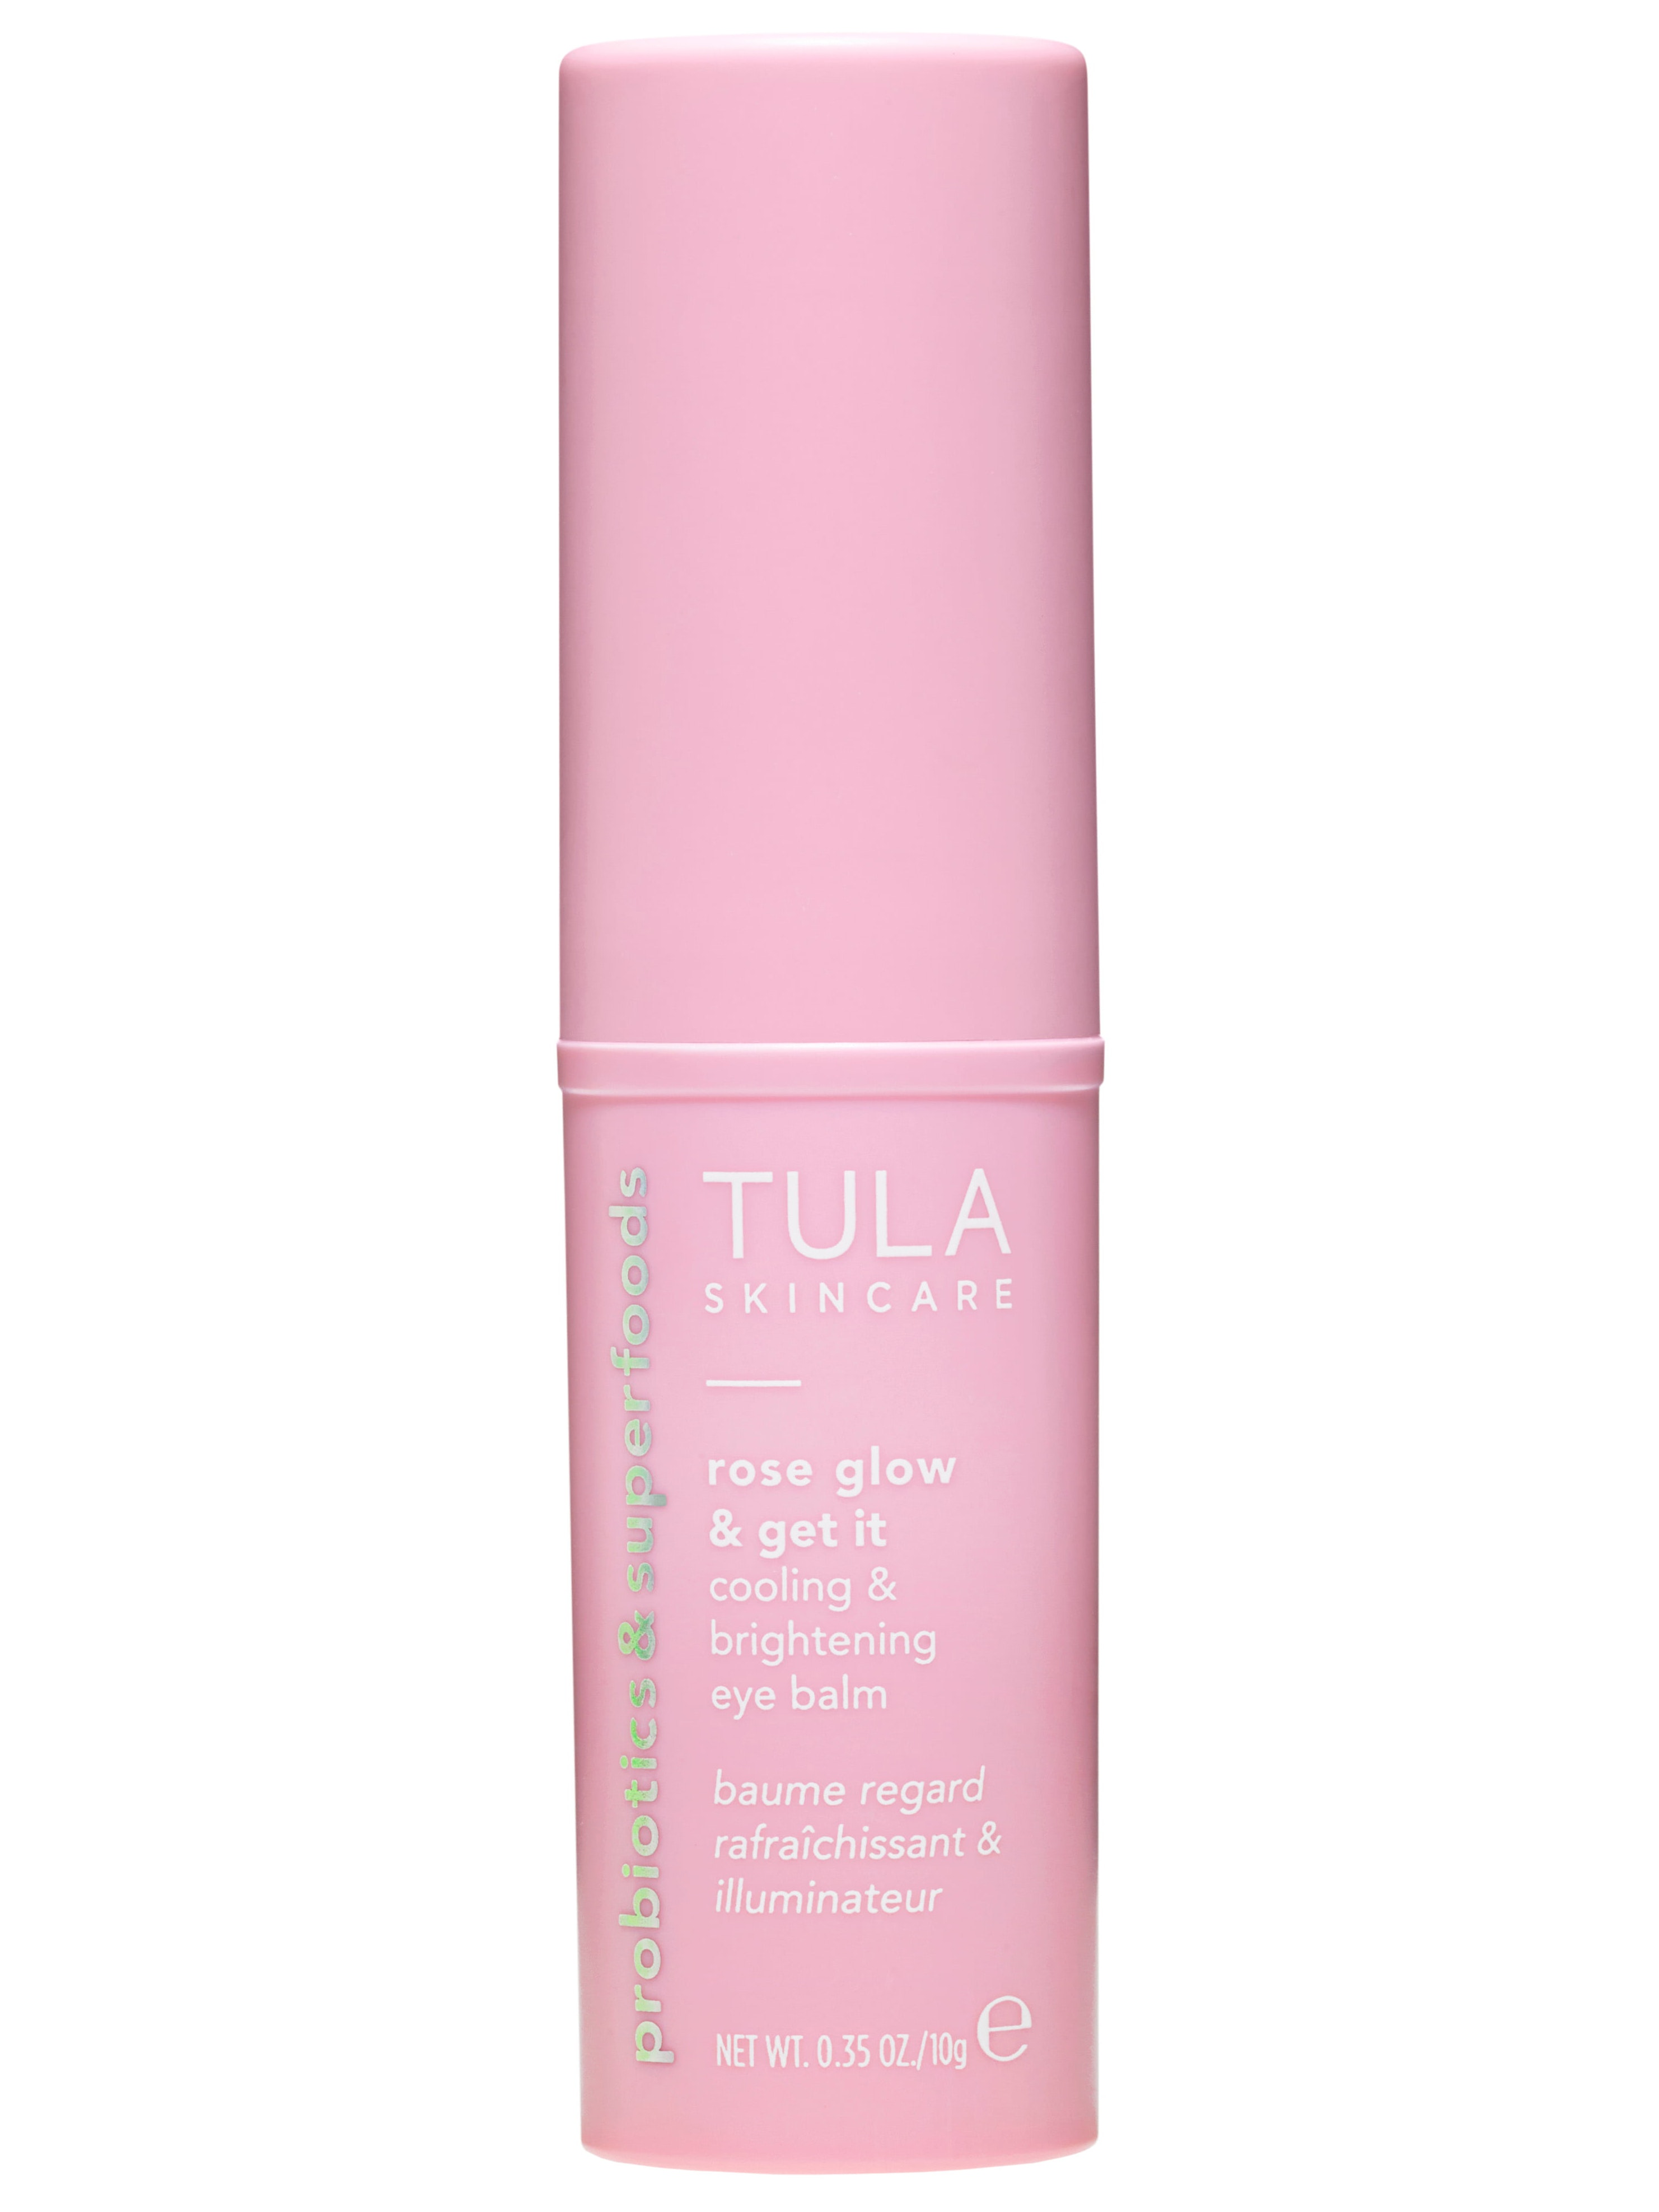 Tula Rose Glow and Get It Cooling and Brightening Eye Balm